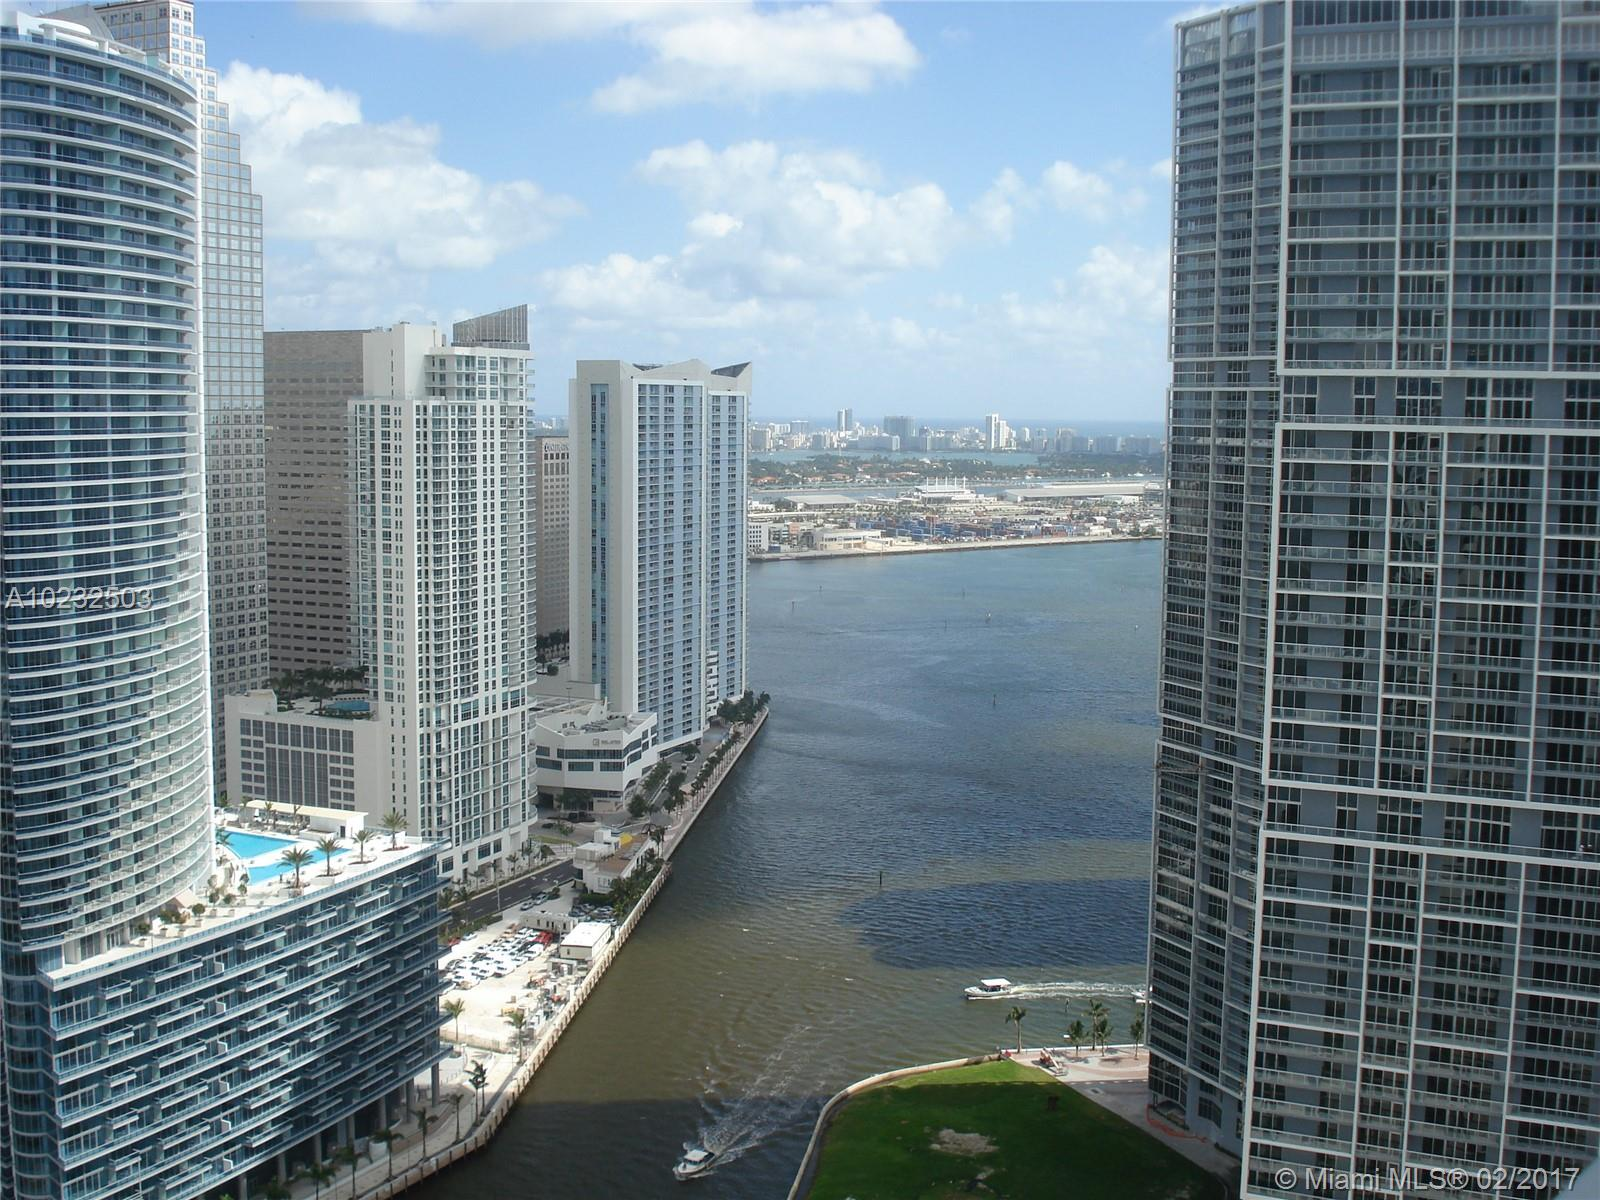 Great middle PH with high ceilings , split plan, nice view of Miami River and downtown skylight. New laminated wood floors!  Centrally located within walking distance to people mover station, Brickell financial center, restaurants and the new Brickell Centre 500 Brickell Condominium has all amenities, two pools, gym, party room, etc. 24 hours lobby attendant and valet parking. Unit is leased till 6/30/2022 $2,900.00 monthly rent.